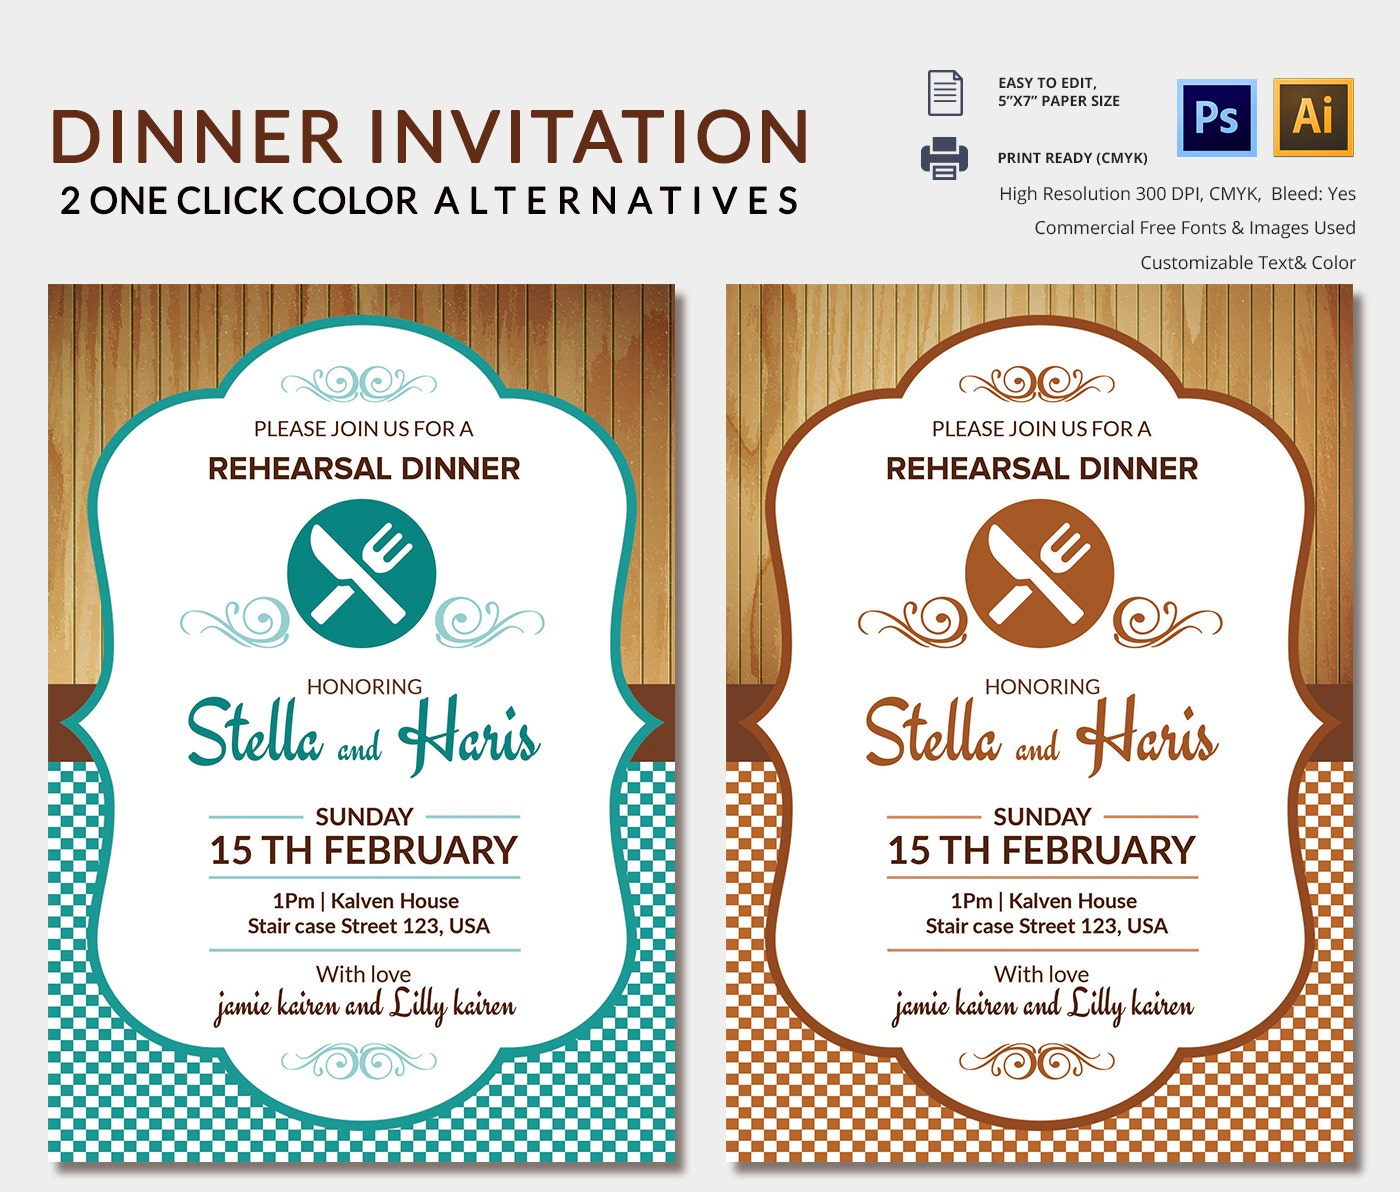 lunch invitation template 25 psd pdf documents print ready dinner invitation template